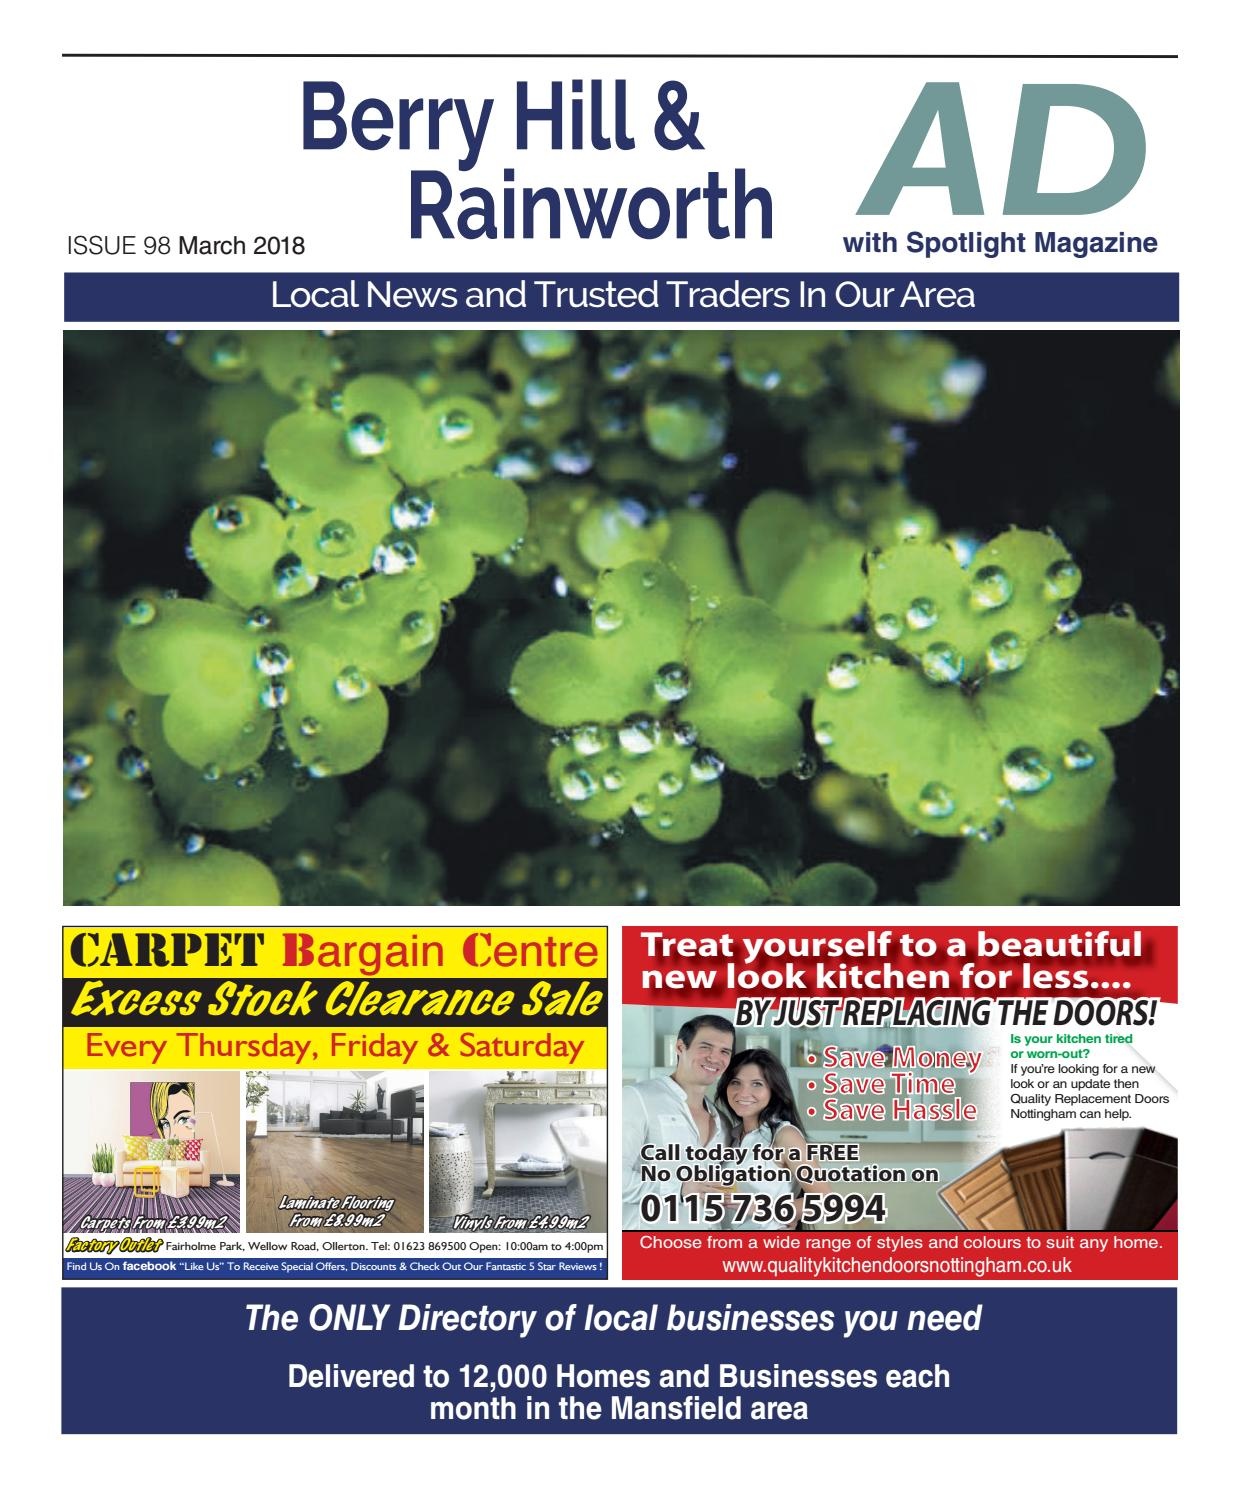 Ad Newspaper for Berry Hill & Rainworth in Mansfield